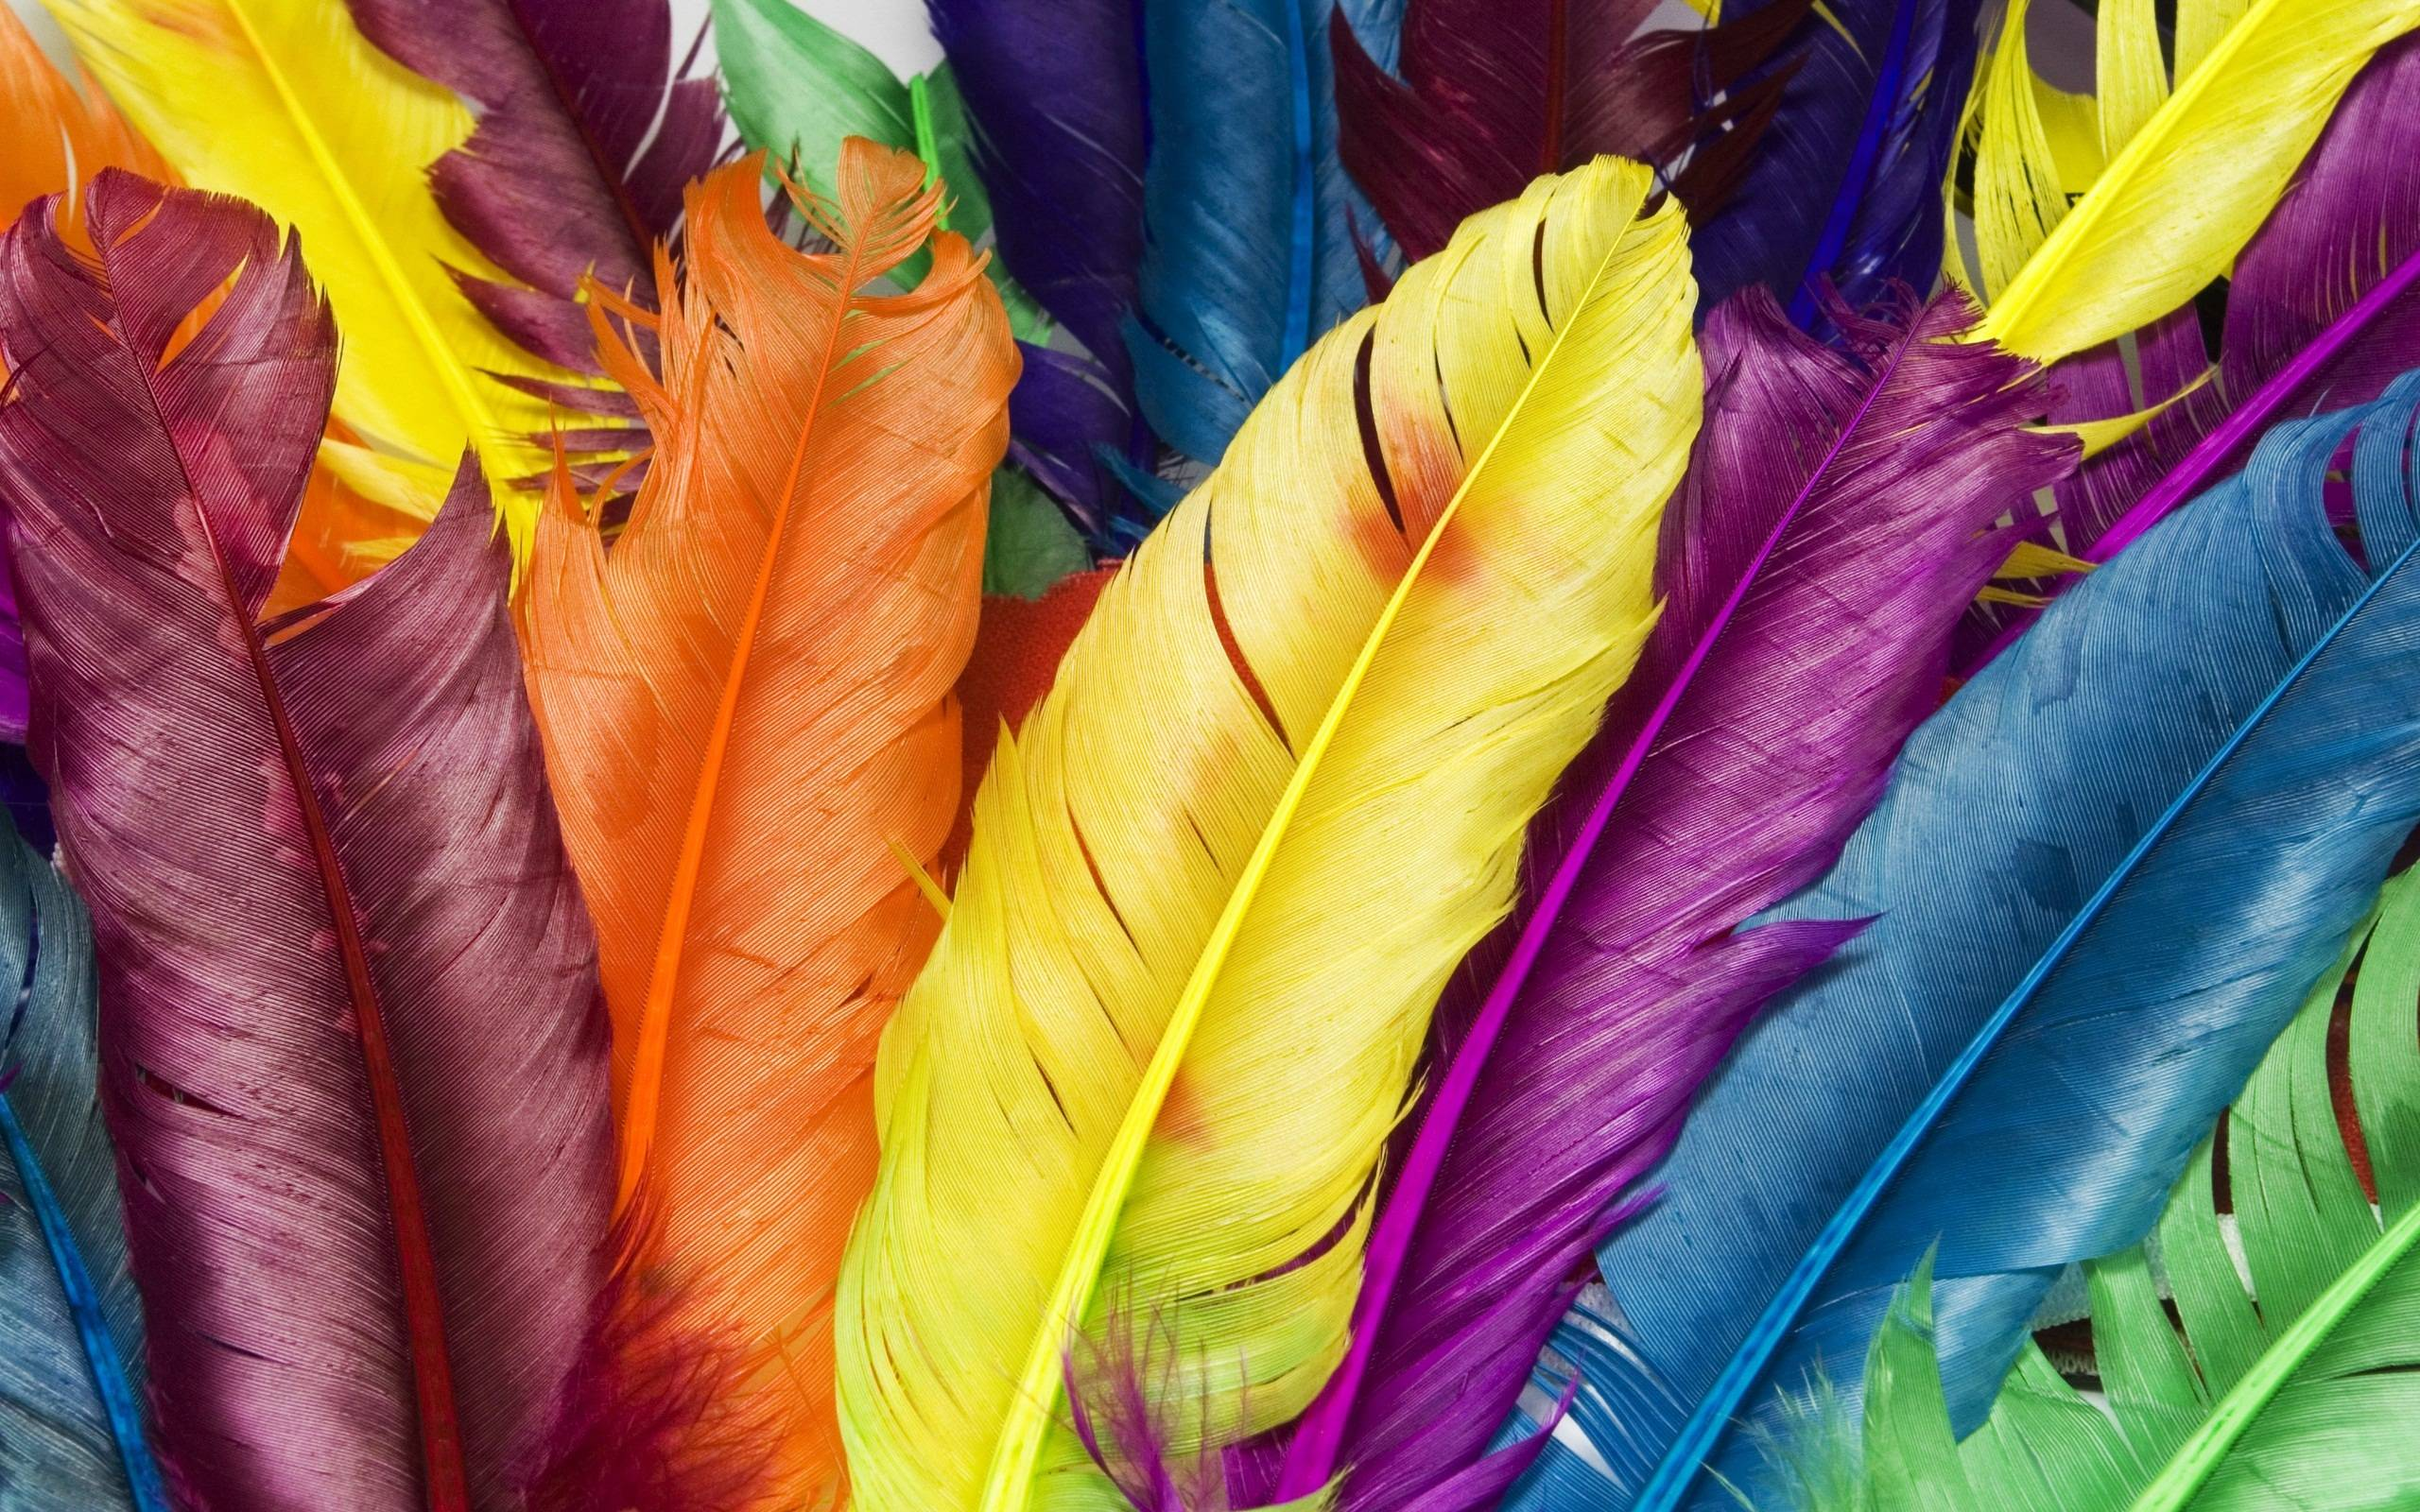 Hd wallpaper colour - Feathers In Colors Wallpapers Hd Wallpapers